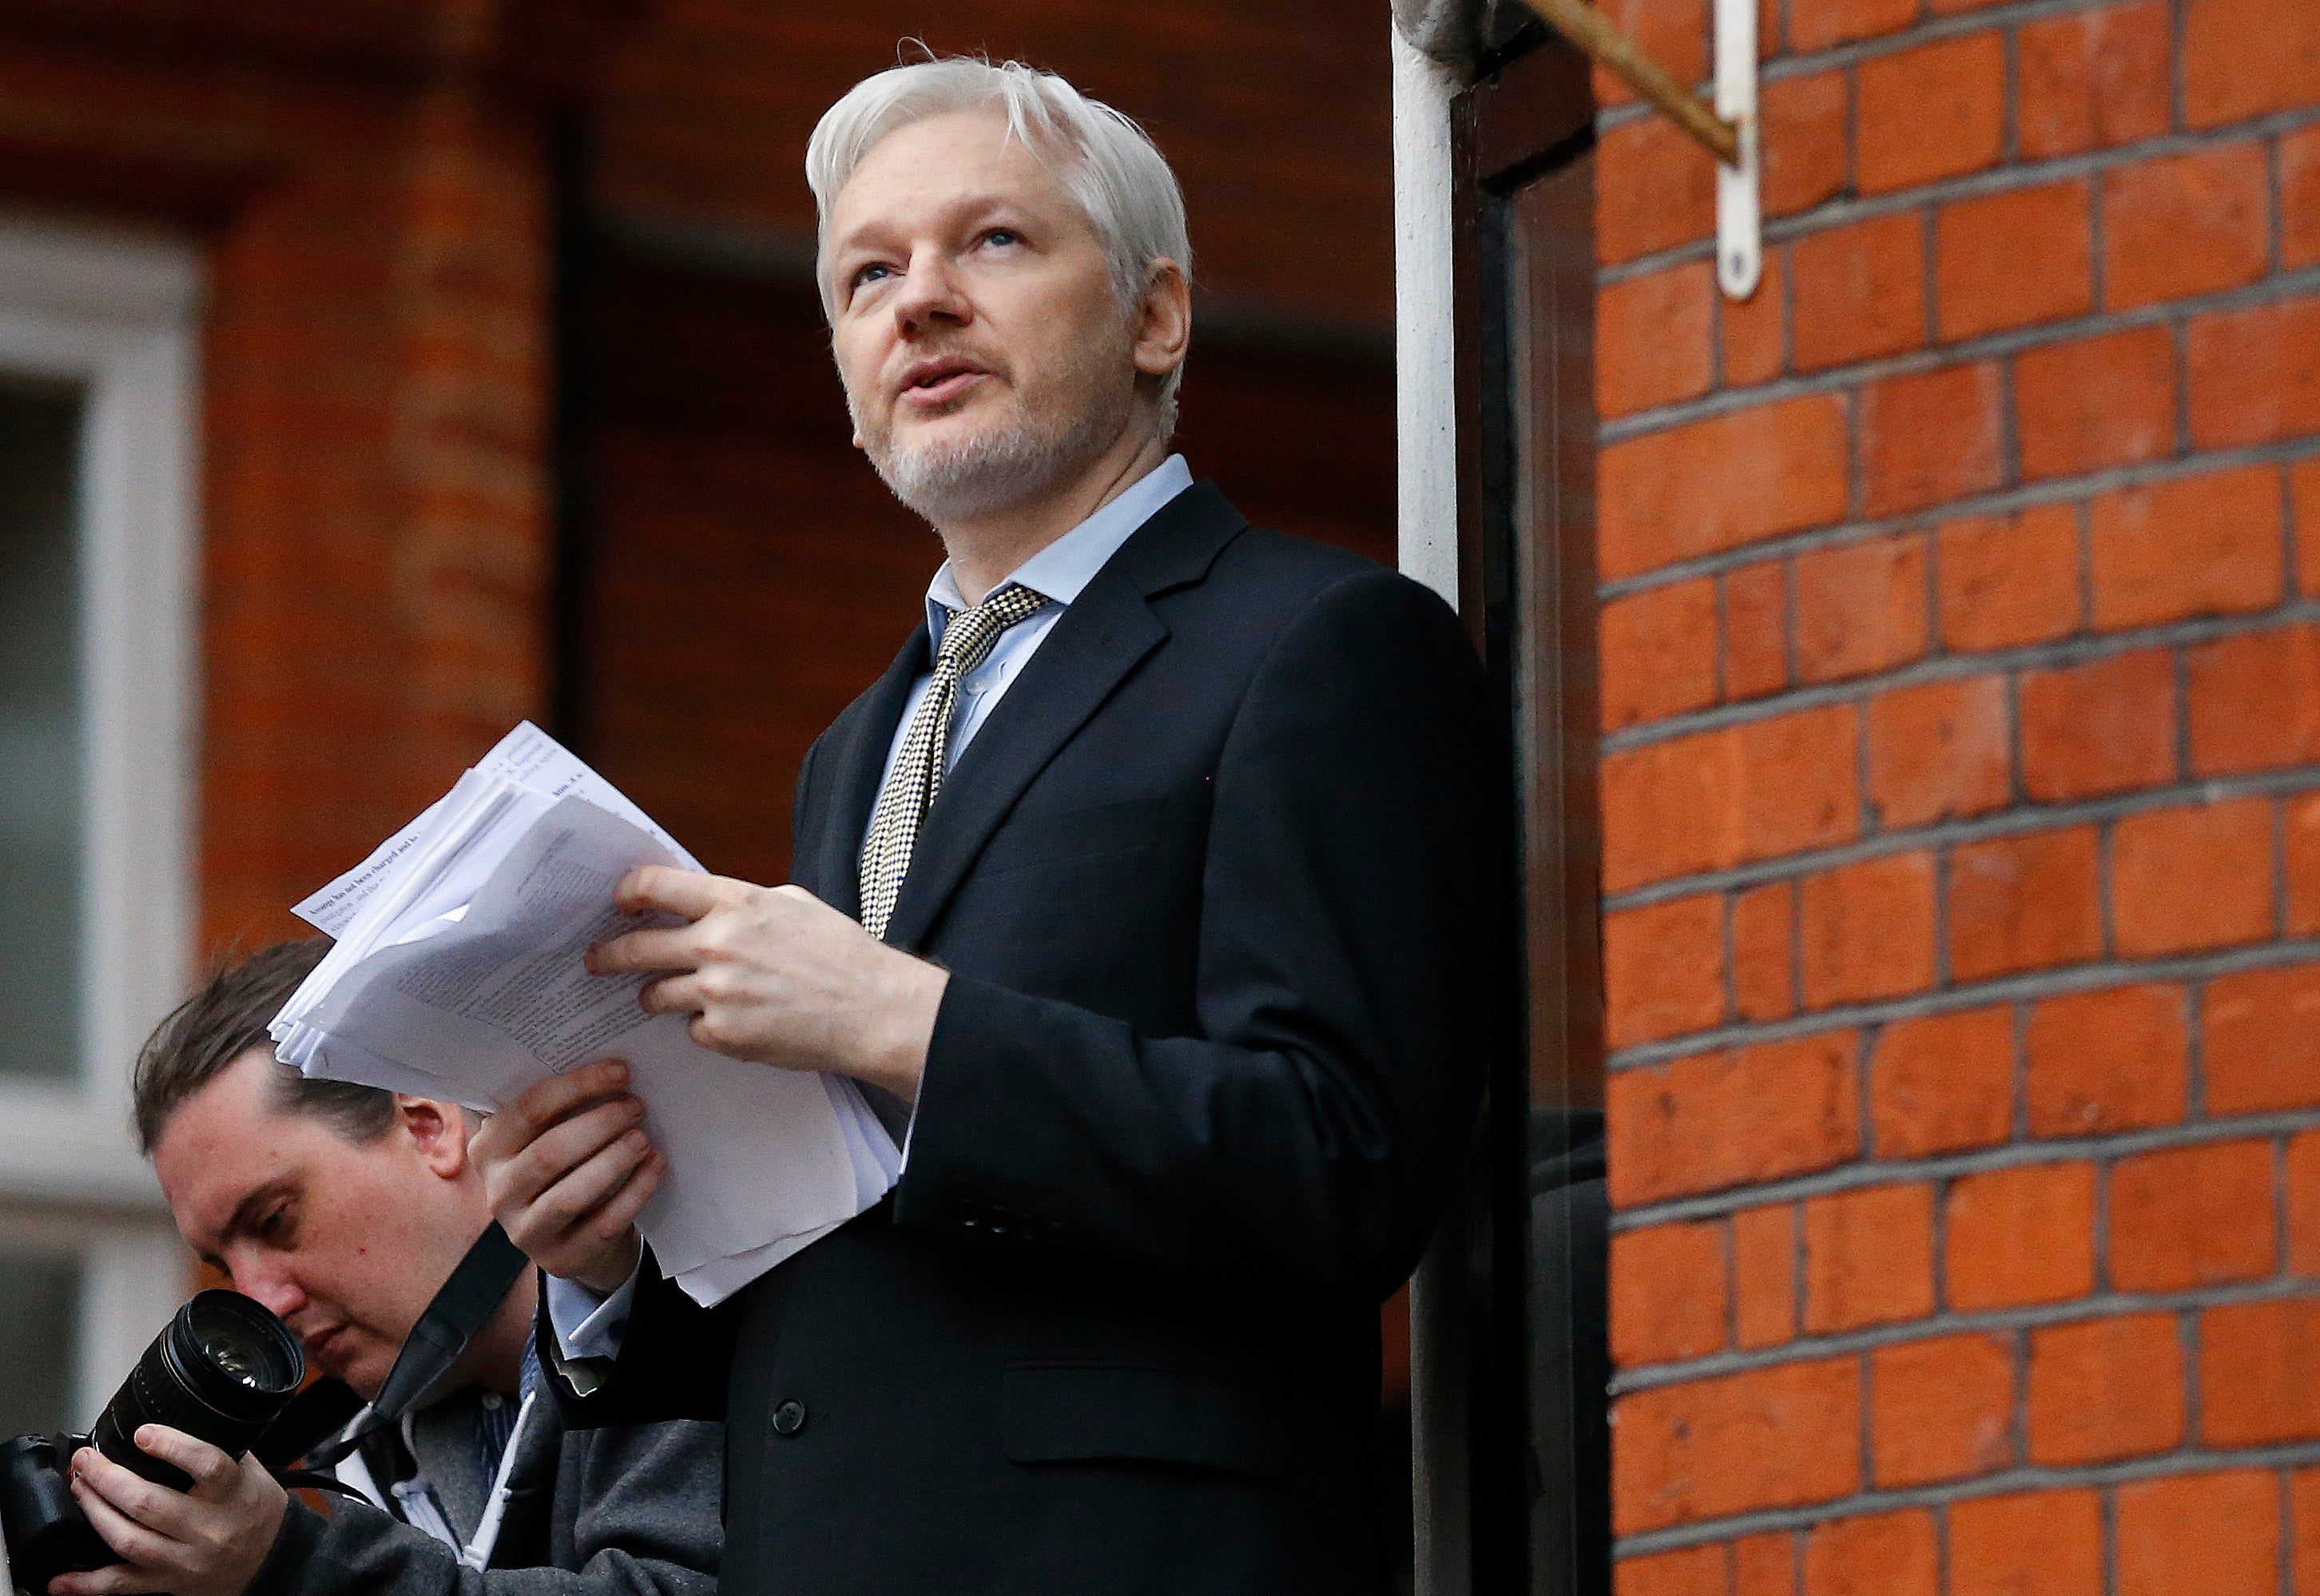 Ecuador Confirms It Has Cut Off Julian Assange's Internet Access